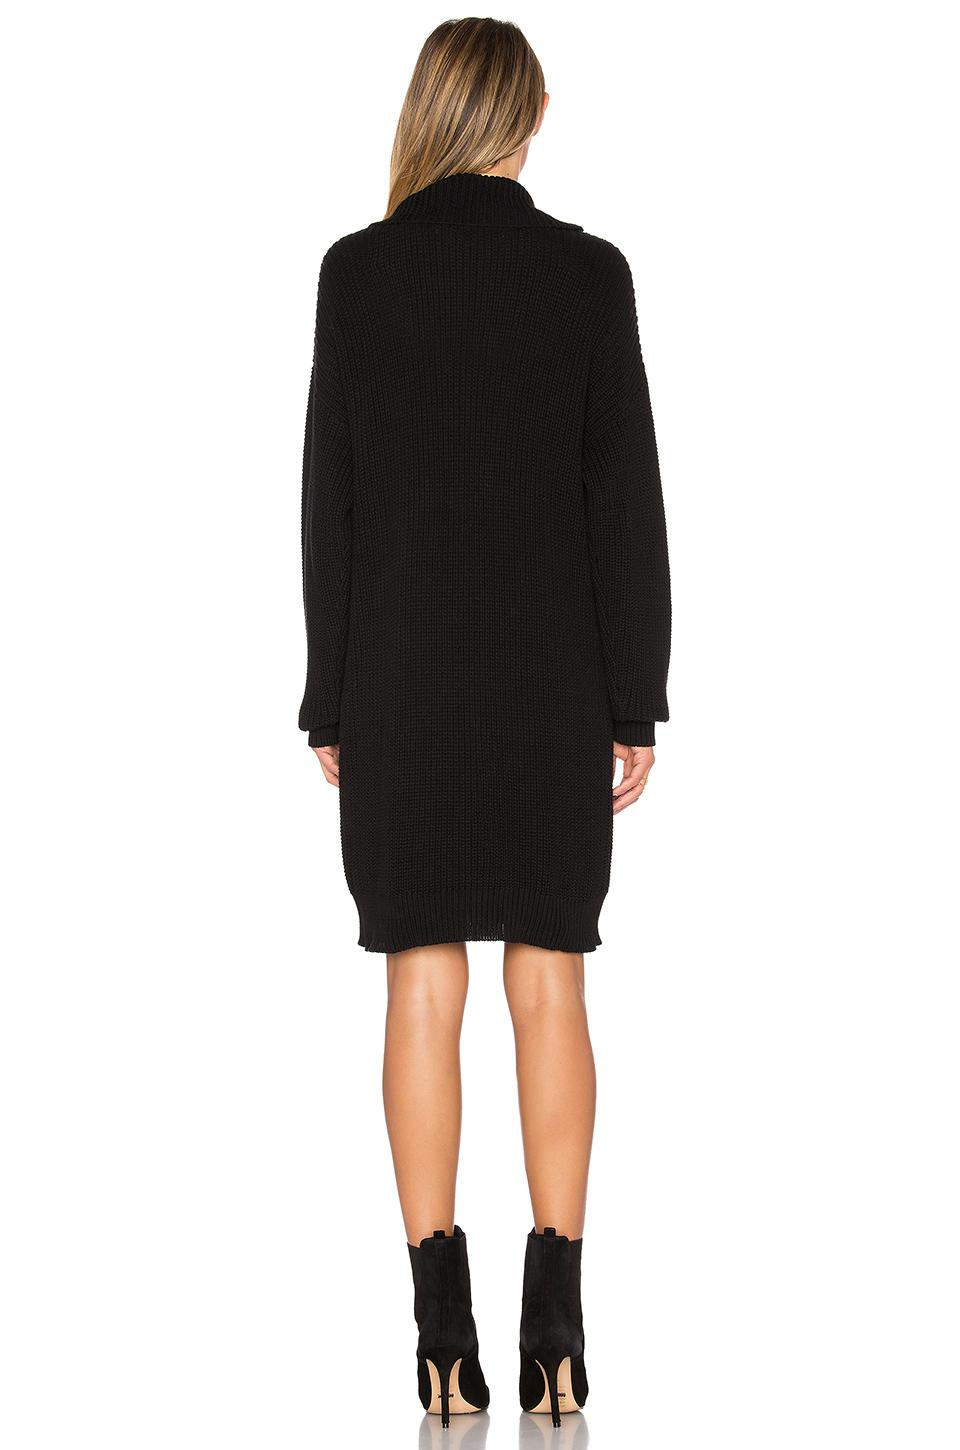 778acc33e34 Lyst - Lovers + Friends Christina Sweater Dress in Black